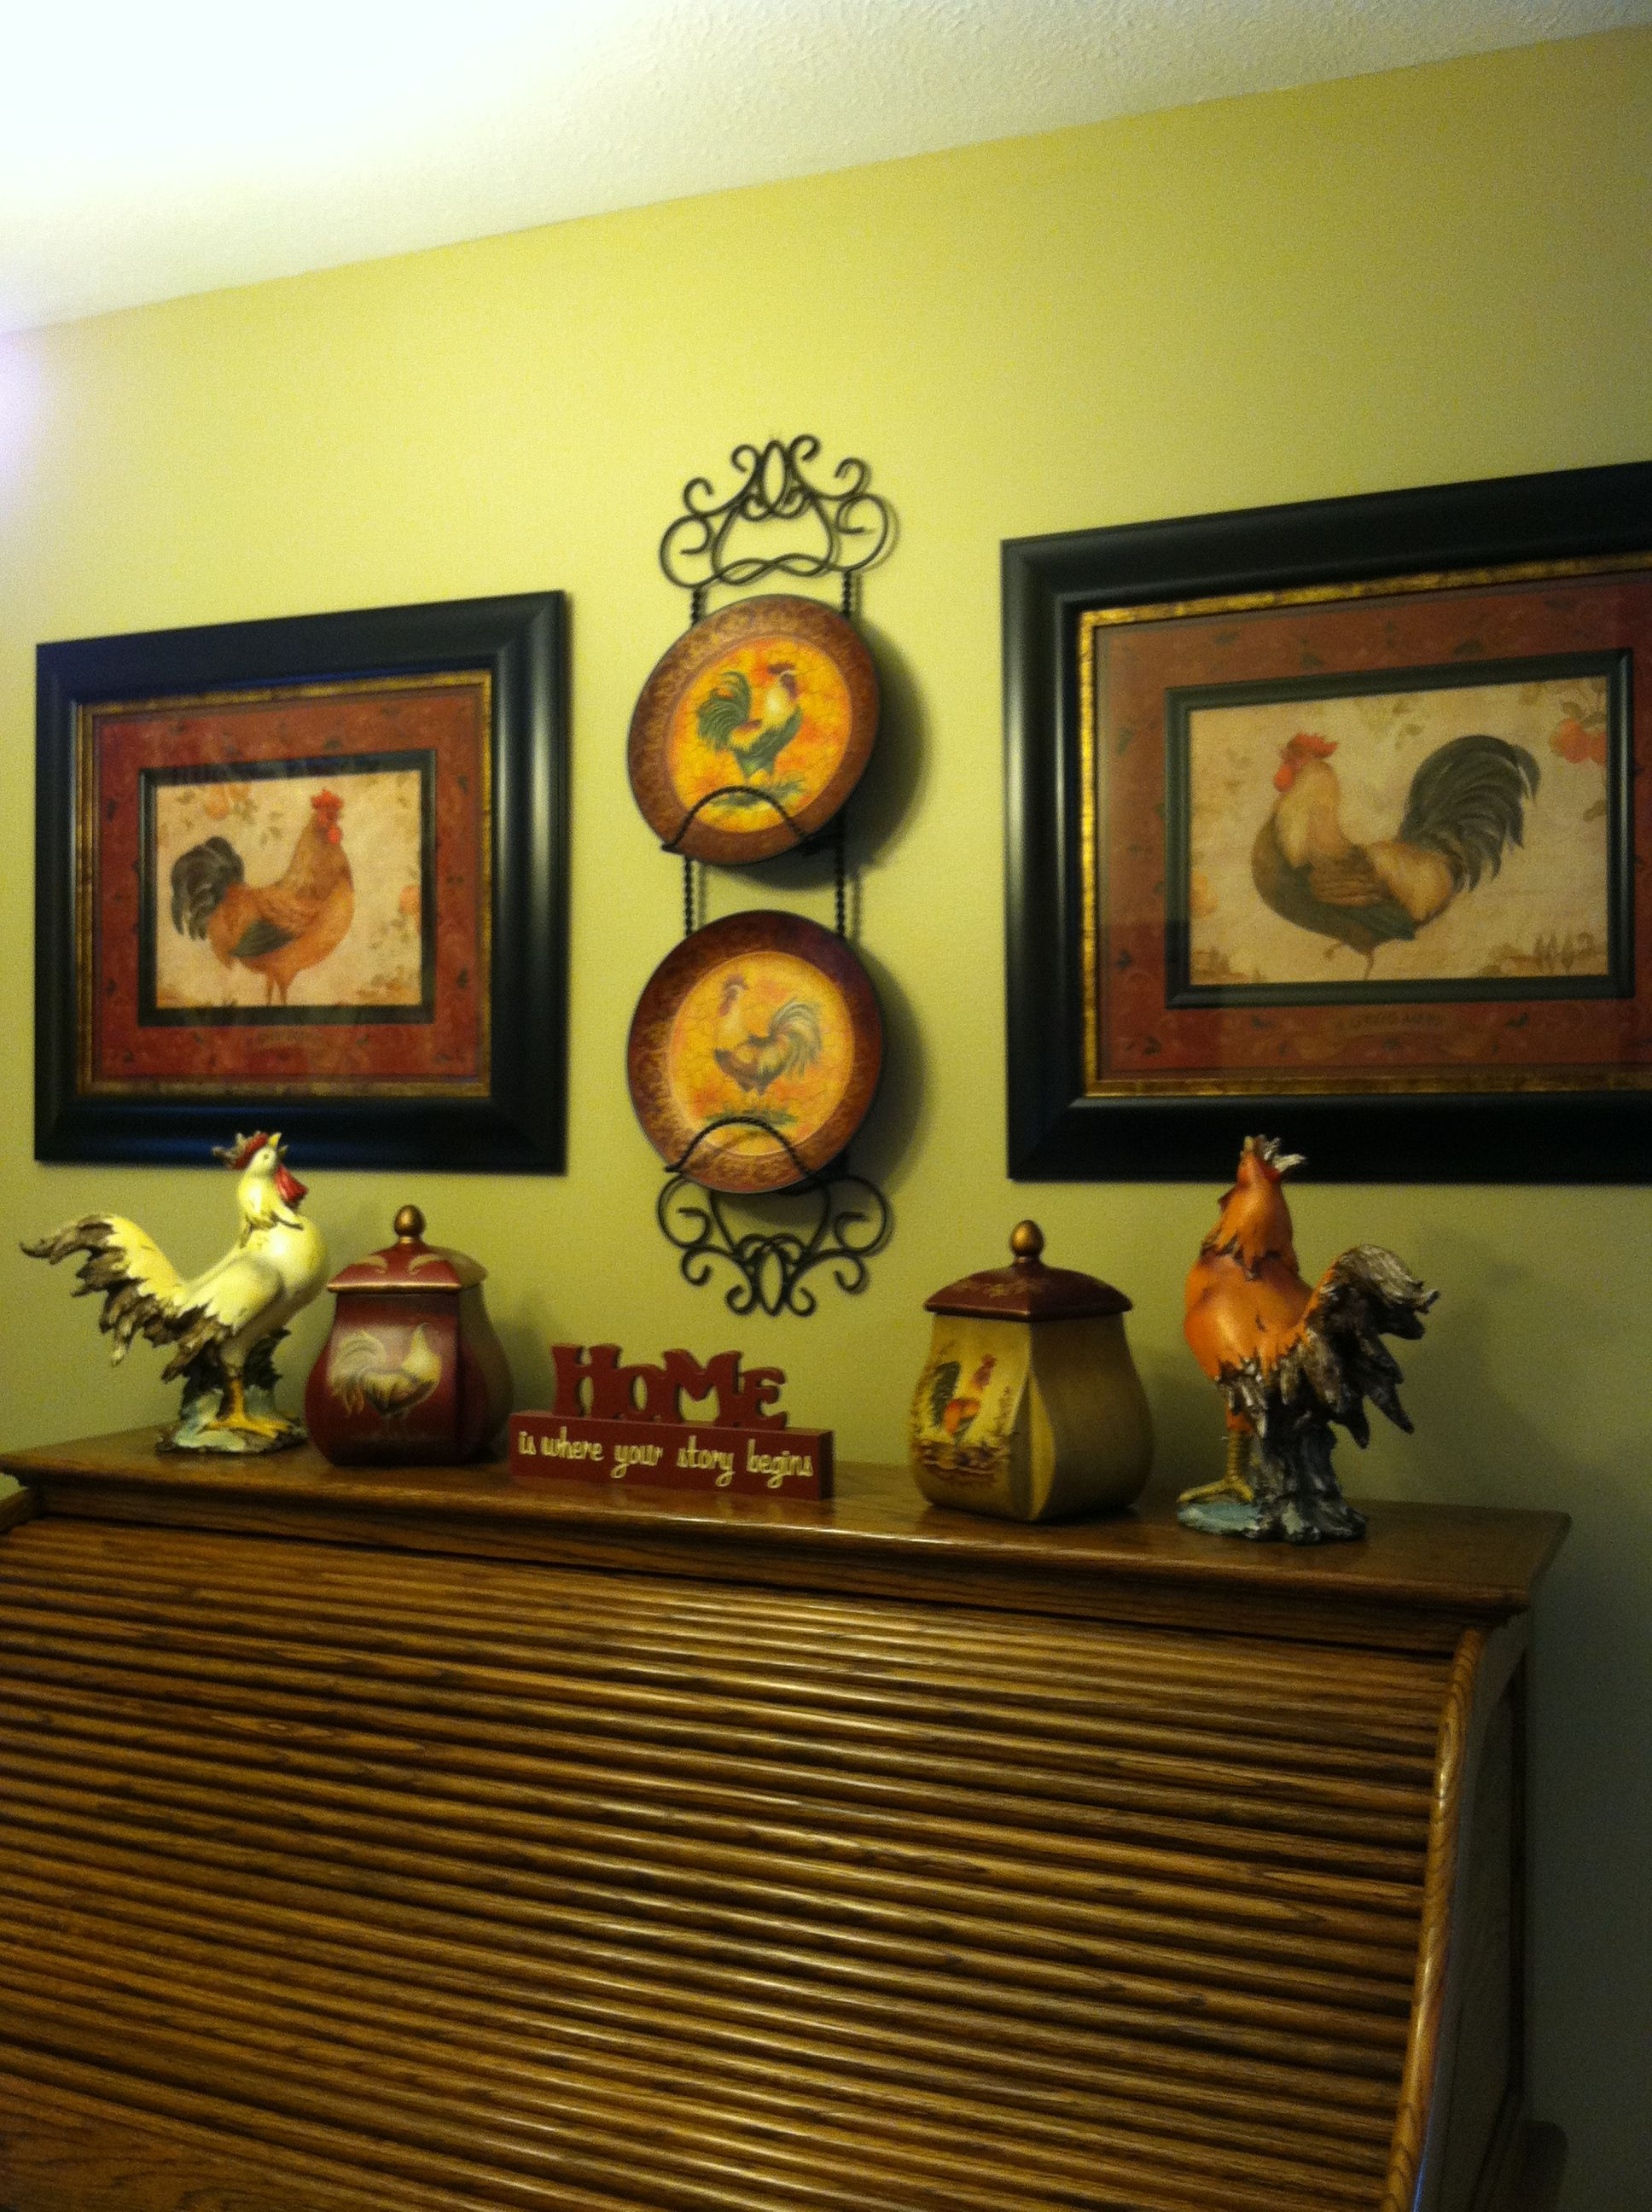 rooster decor rooster kitchen decor quirky kitchen decor kitchen decor on kitchen ideas decoration themes id=34700